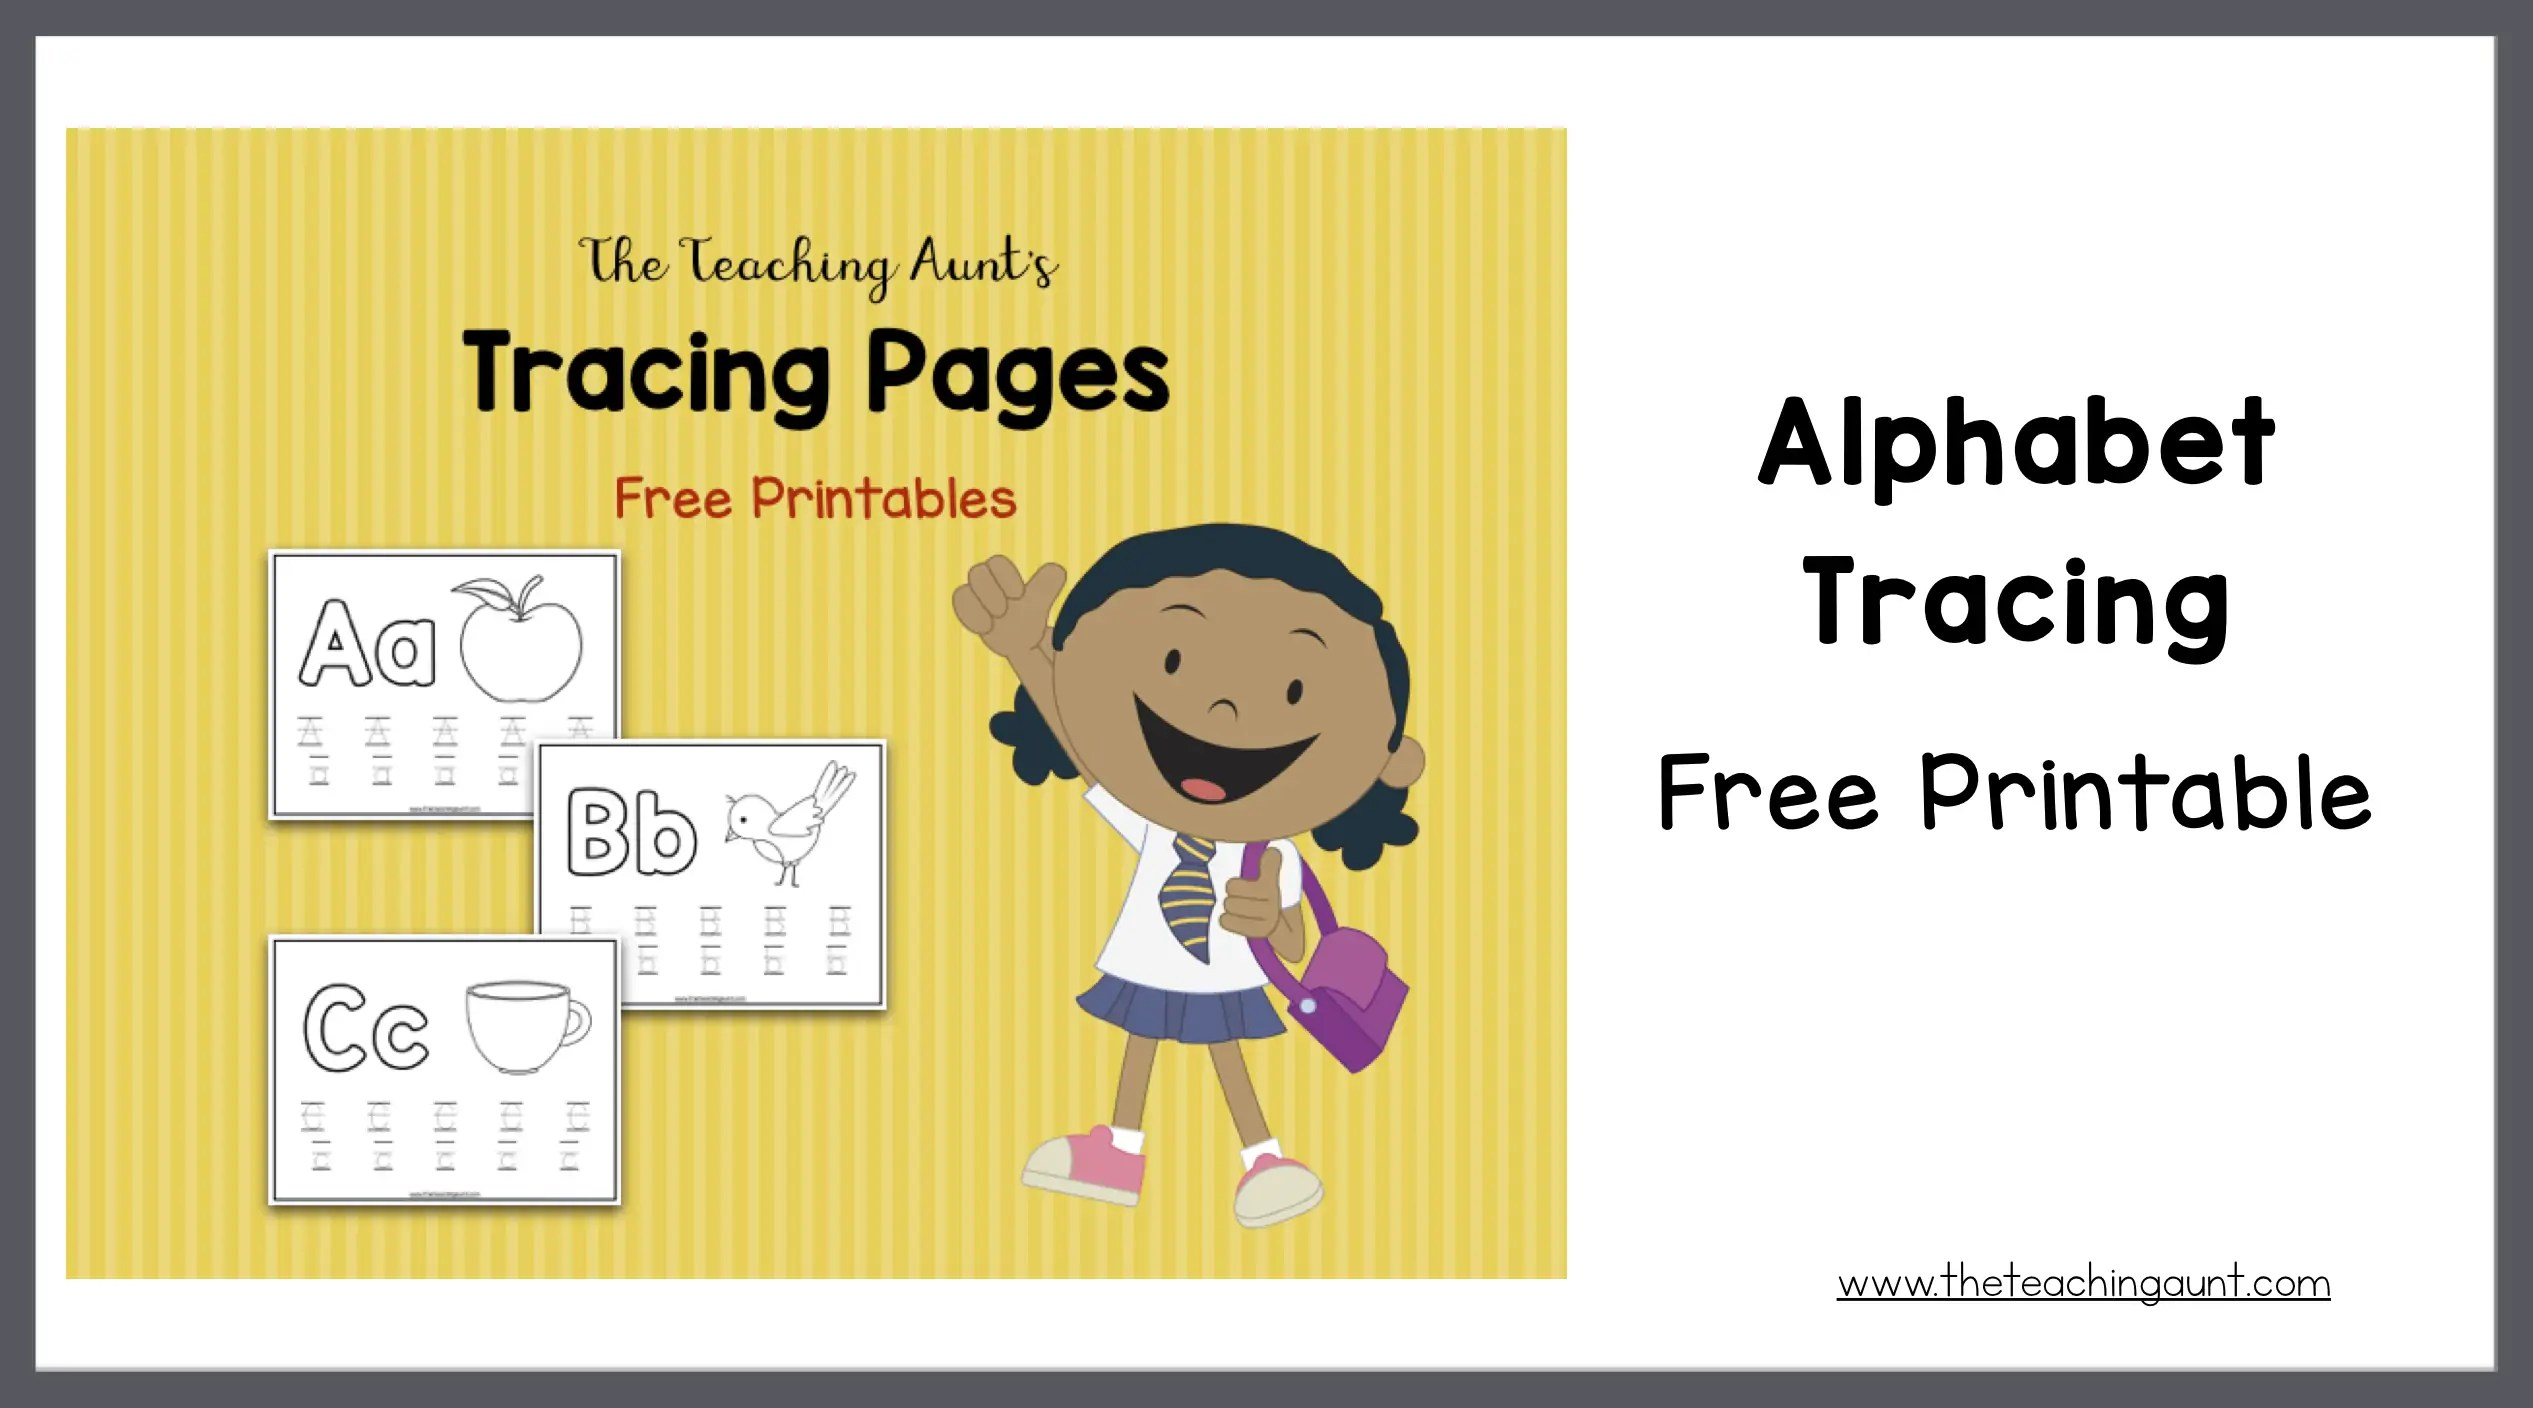 photograph relating to Printable Font called Alphabet Tracing Absolutely free Printable - The Training Aunt